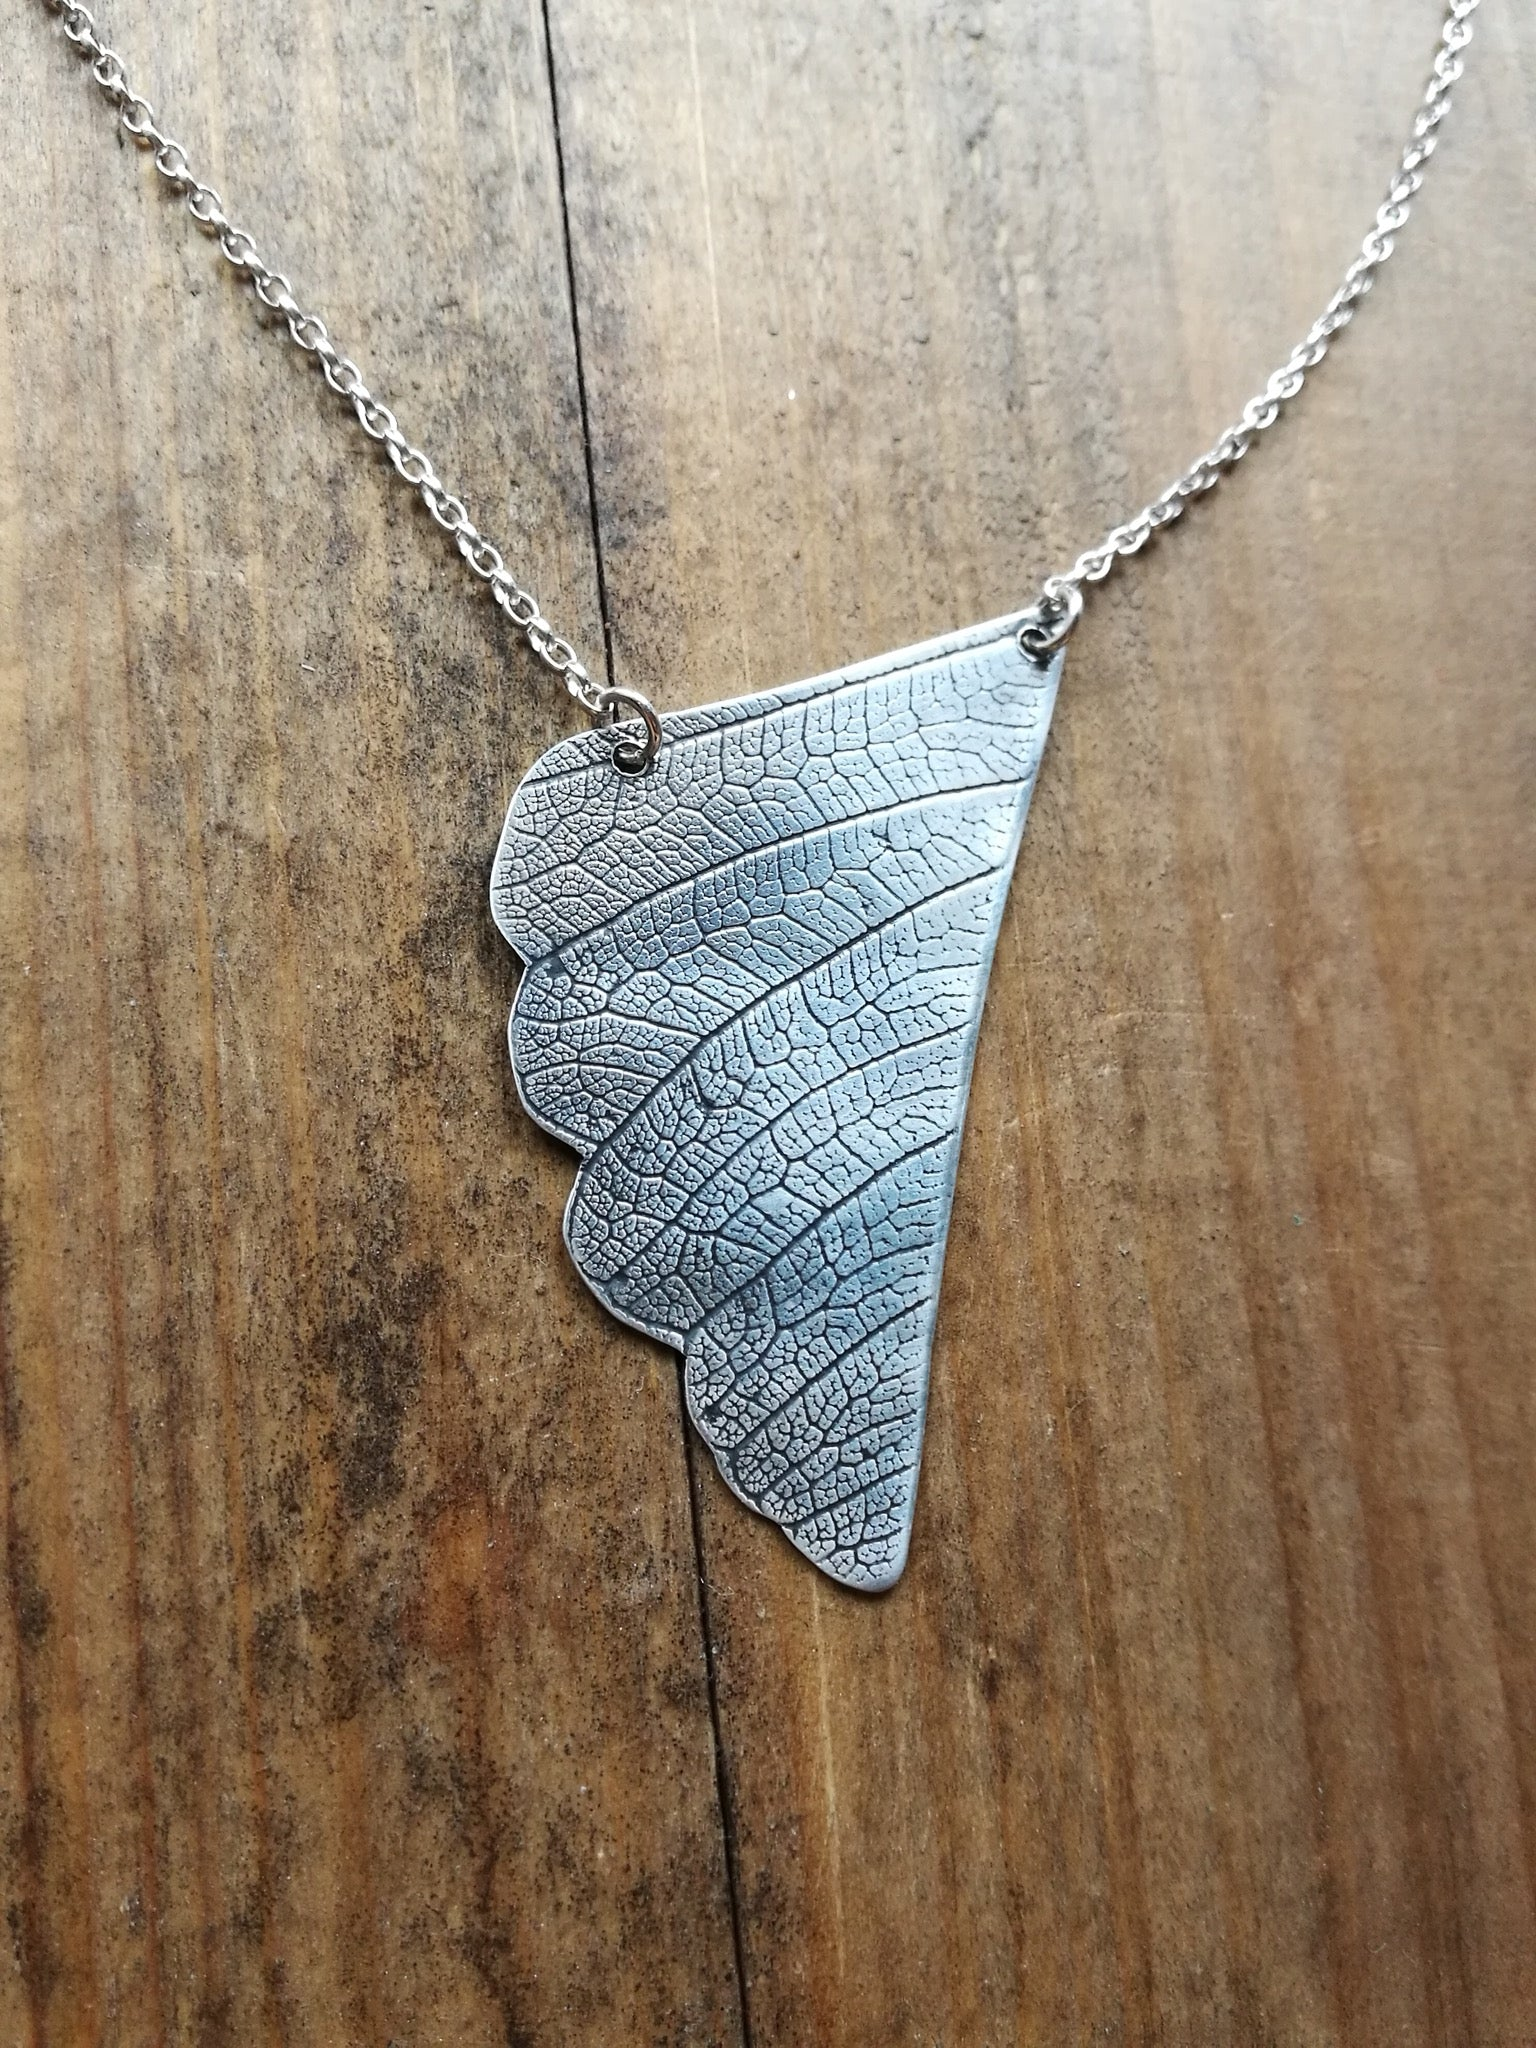 Handmade Sterling Silver Necklace, leaf vein textured, with rolo chain